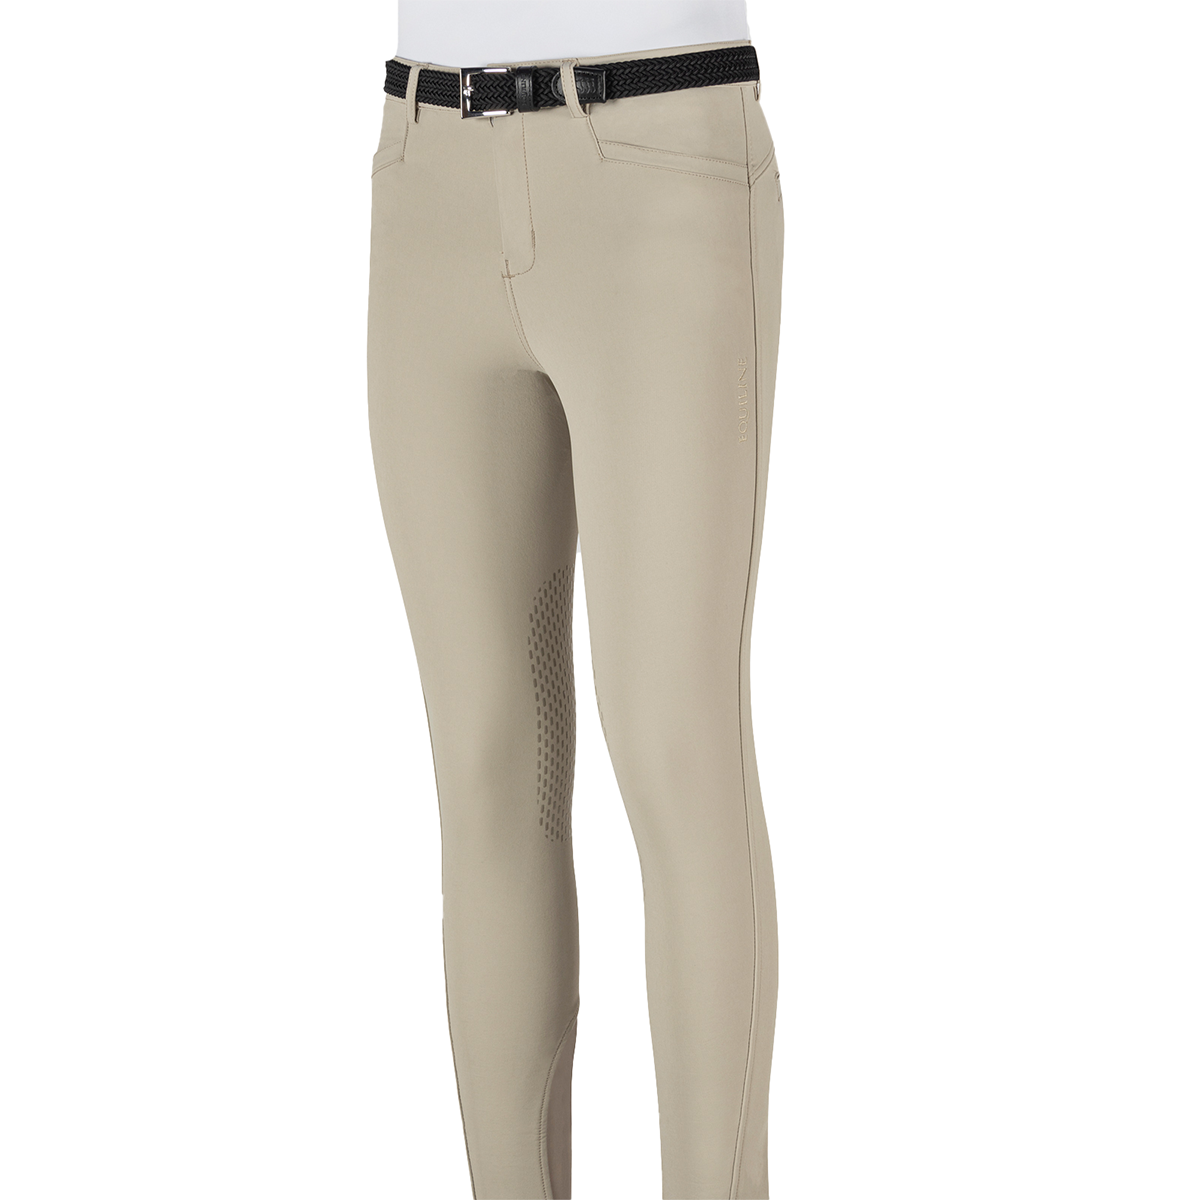 Equiline JhoanK Boy's Knee Patch Breeches